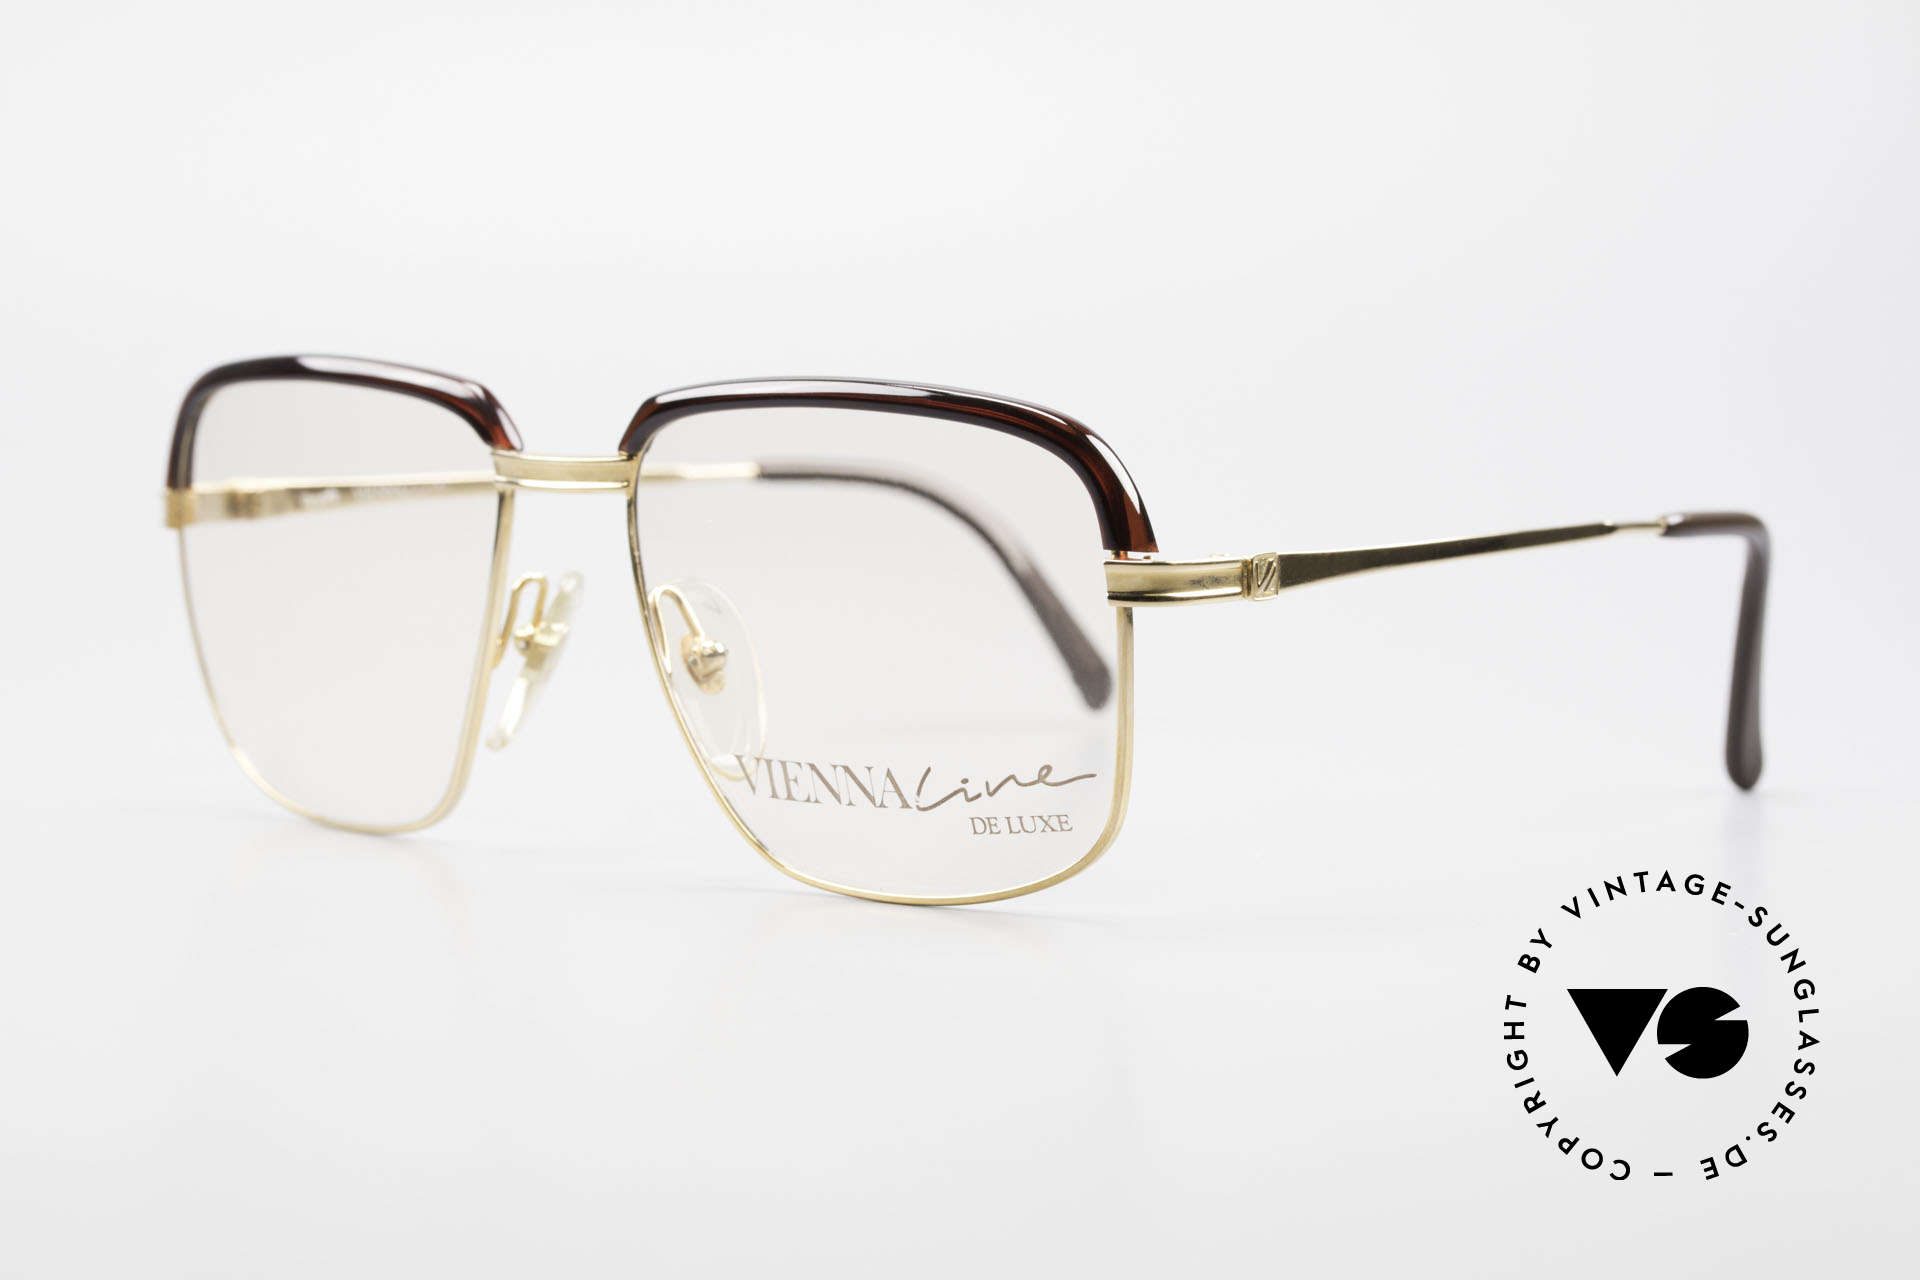 Vienna Line True 70's Men's Combi Frame, characteristic of the 70's men's fashion, DELUXE!, Made for Men